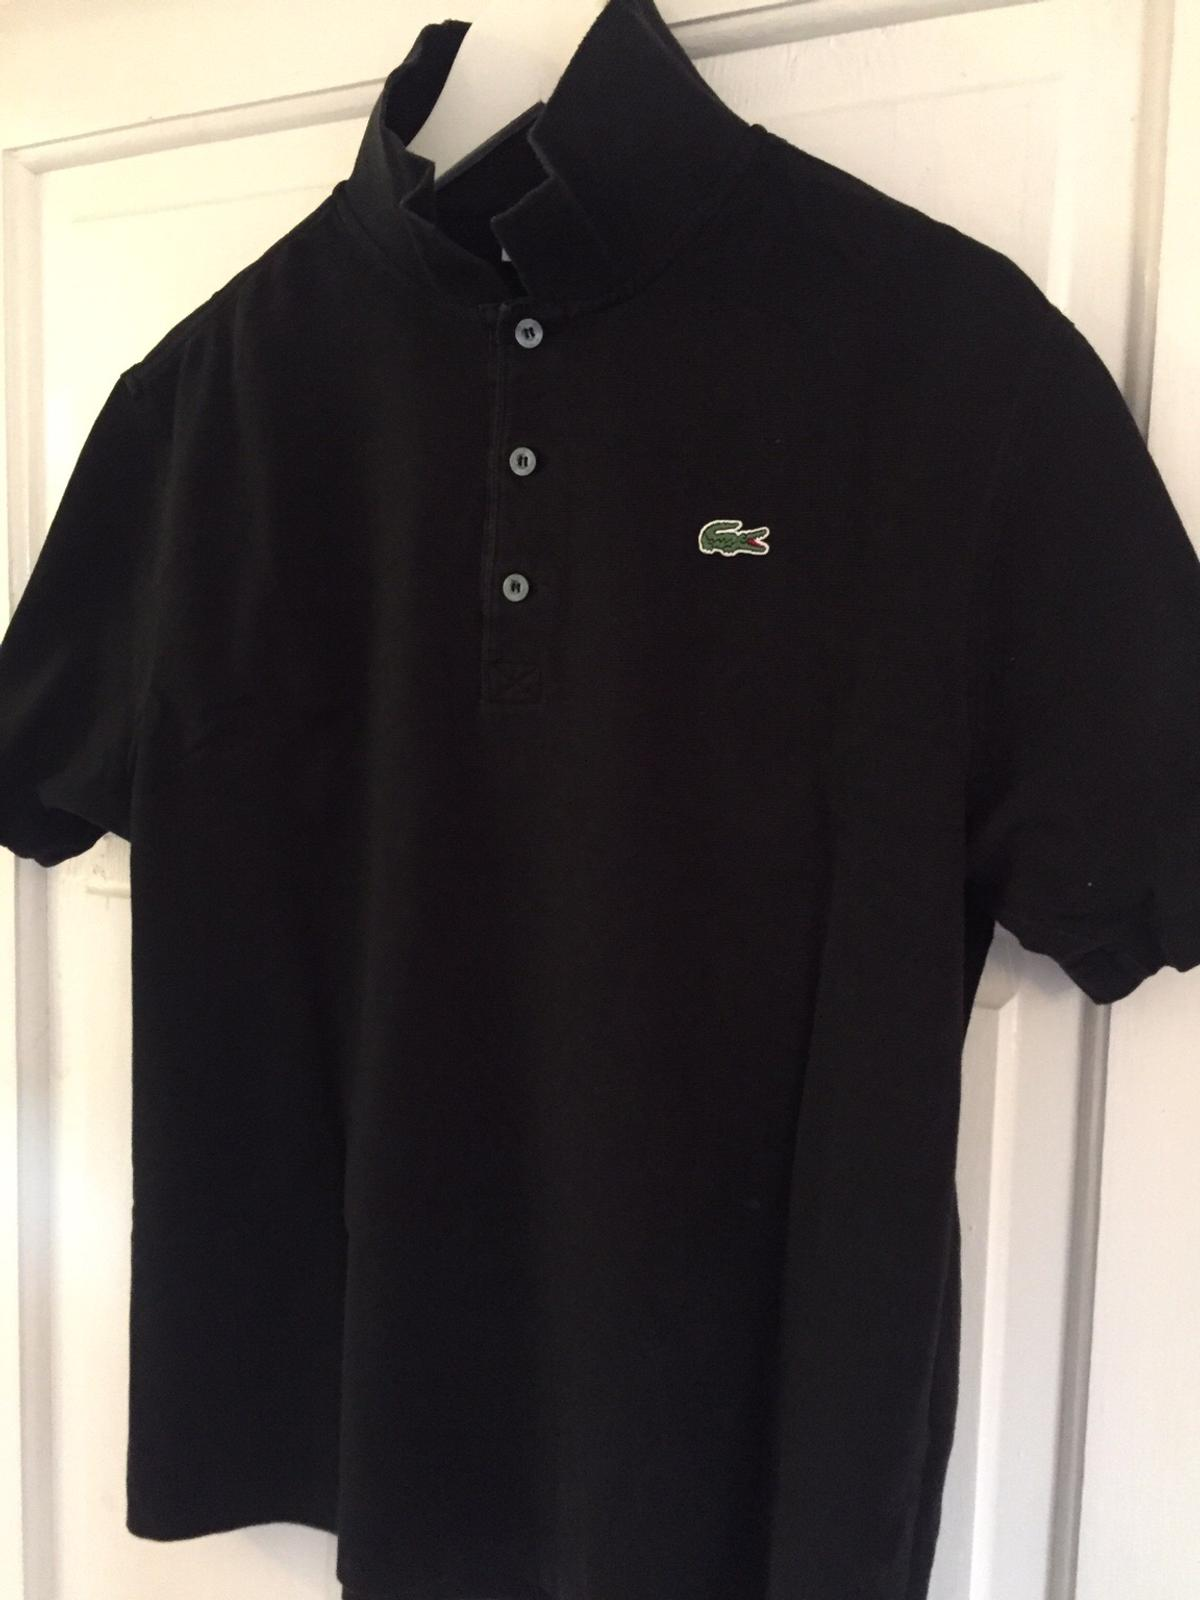 0c34e77cff9 Mens Black Lacoste Polo Shirt – EDGE Engineering and Consulting Limited